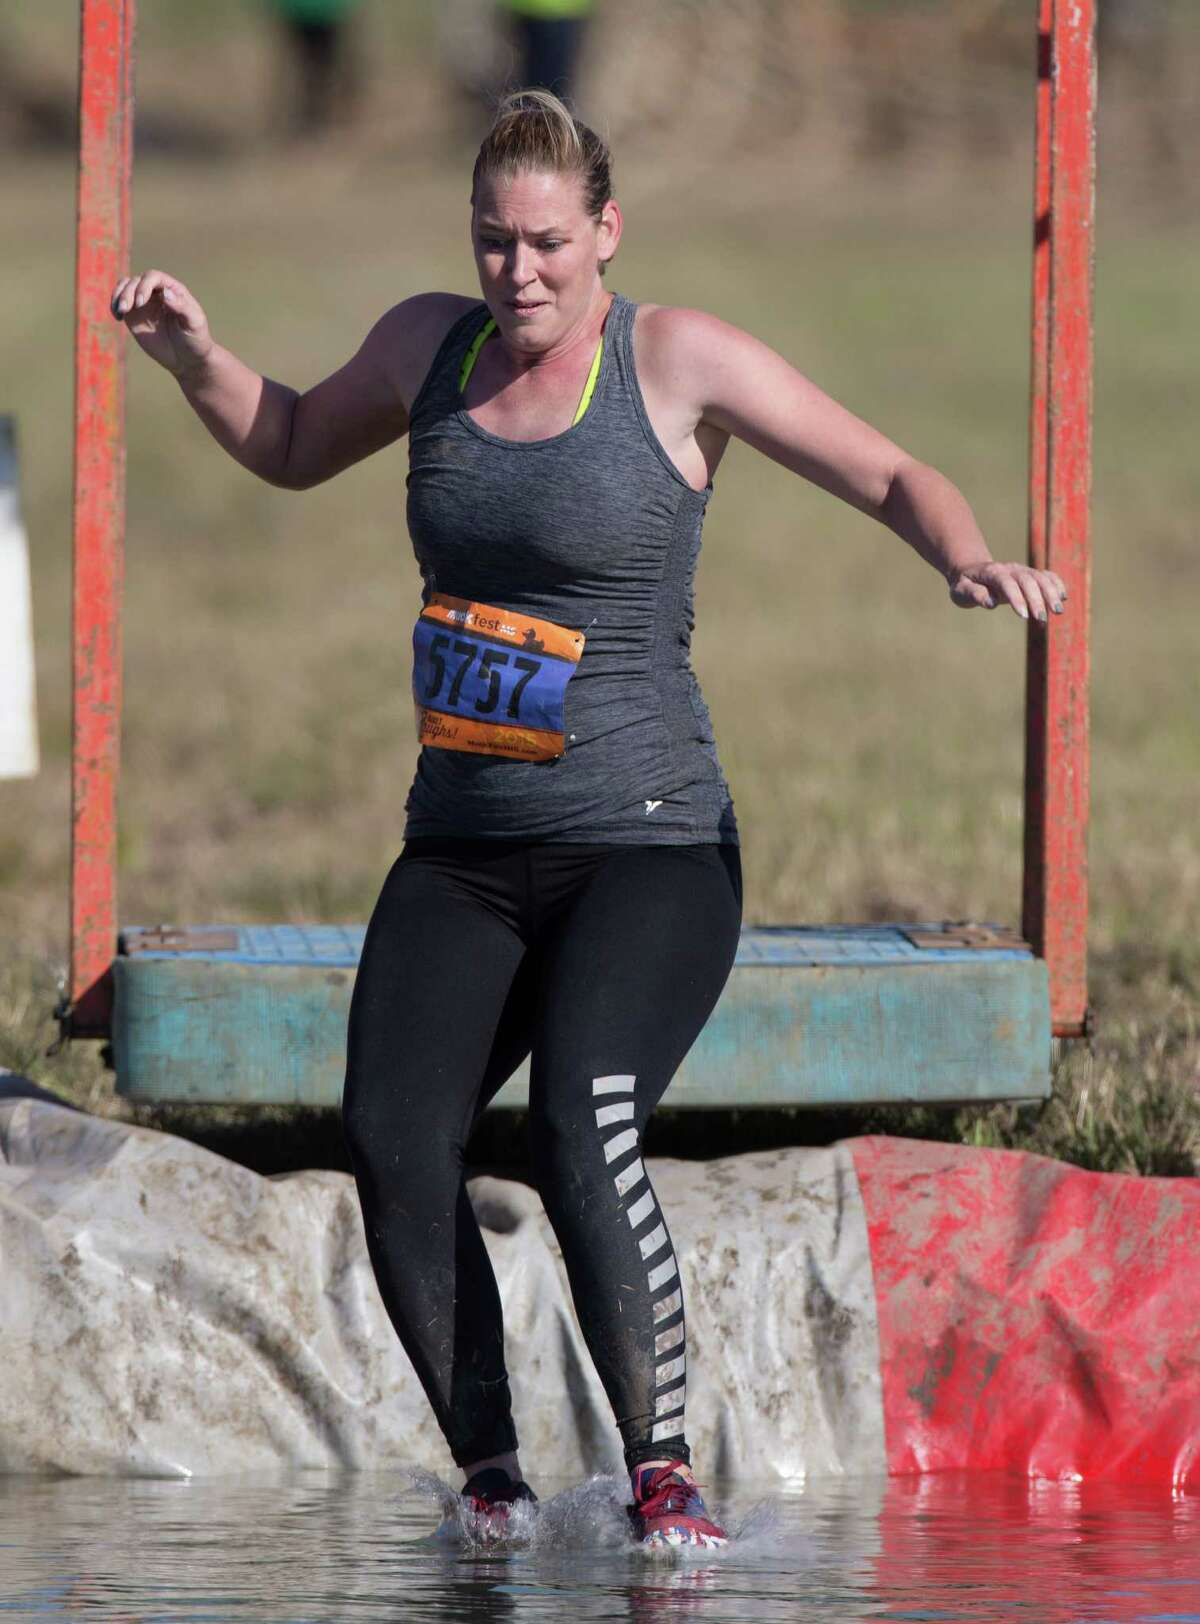 A muckers takes the plunged in a pool of muddy water during the MuckFest at Royal Purple Raceway, Saturday, Nov. 14, 2015, in Baytown.